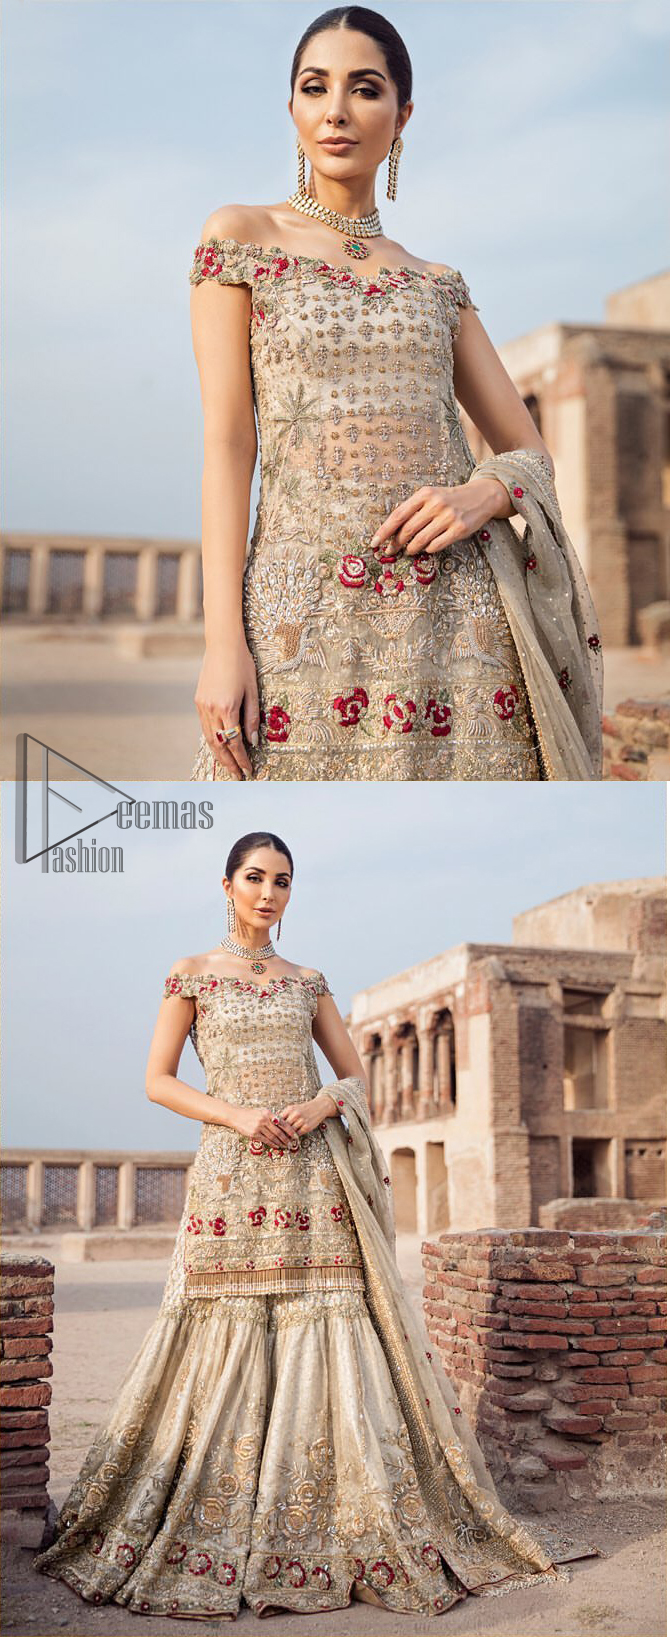 Classic and elegant, this dress is perfect for brides looking for a traditionally wedding outfit.. A perfectly pretty combination of light golden and antique embellishment, This off shoulder wedding dress is elegant and eye-catching in equal measure. This off shoulder shirt is done with zarozi detailing and vibrant floral motifs all over. Furthermore it is sculptured with different motifs like birds. It comprises with traditional handcrafted gharara. Complete the look with off white organza dupatta having four sided heavily embellished border and tassels.